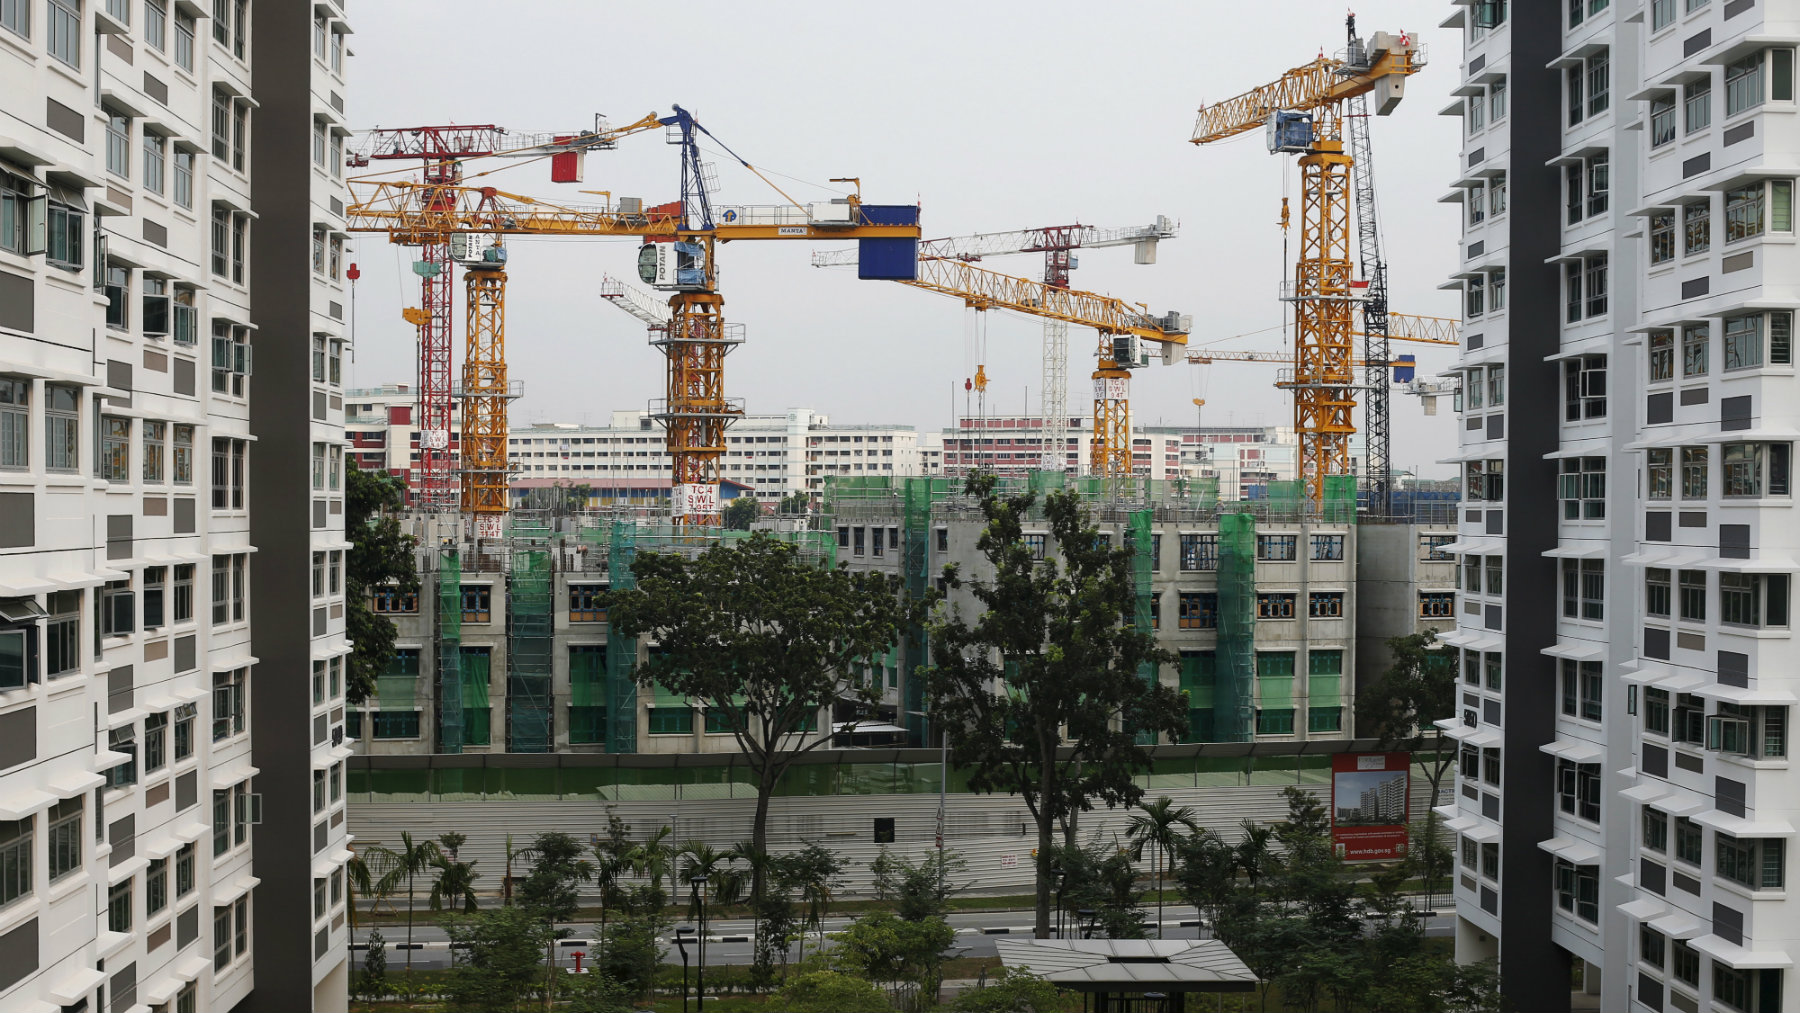 A view of a construction site of a public residential apartment estate next to completed estates in Singapore September 7, 2015. Singapore's private home prices are expected to extend their longest stretch of decline in over a decade as an imminent U.S. interest rate hike threatens to push up borrowing costs, in a market where measures to cool prices have also strangled demand. Prices have fallen about 7 percent over the past seven quarters, after the government raised stamp duties and tightened lending criteria. But the pace of decline pales in comparison to the 60 percent surge of the four years to 2013, as overseas investors in particular took advantage of low interest rates. Housing prices are a hot topic in the land-starved country, home to some of the world's most expensive real estate. Prices topped the agenda in a 2011 election decided by the slimmest-ever margin, and voters at some party rallies said prices will be on their minds when they go to the polls again on Friday. Picture taken September 7, 2015. REUTERS/Edgar Su